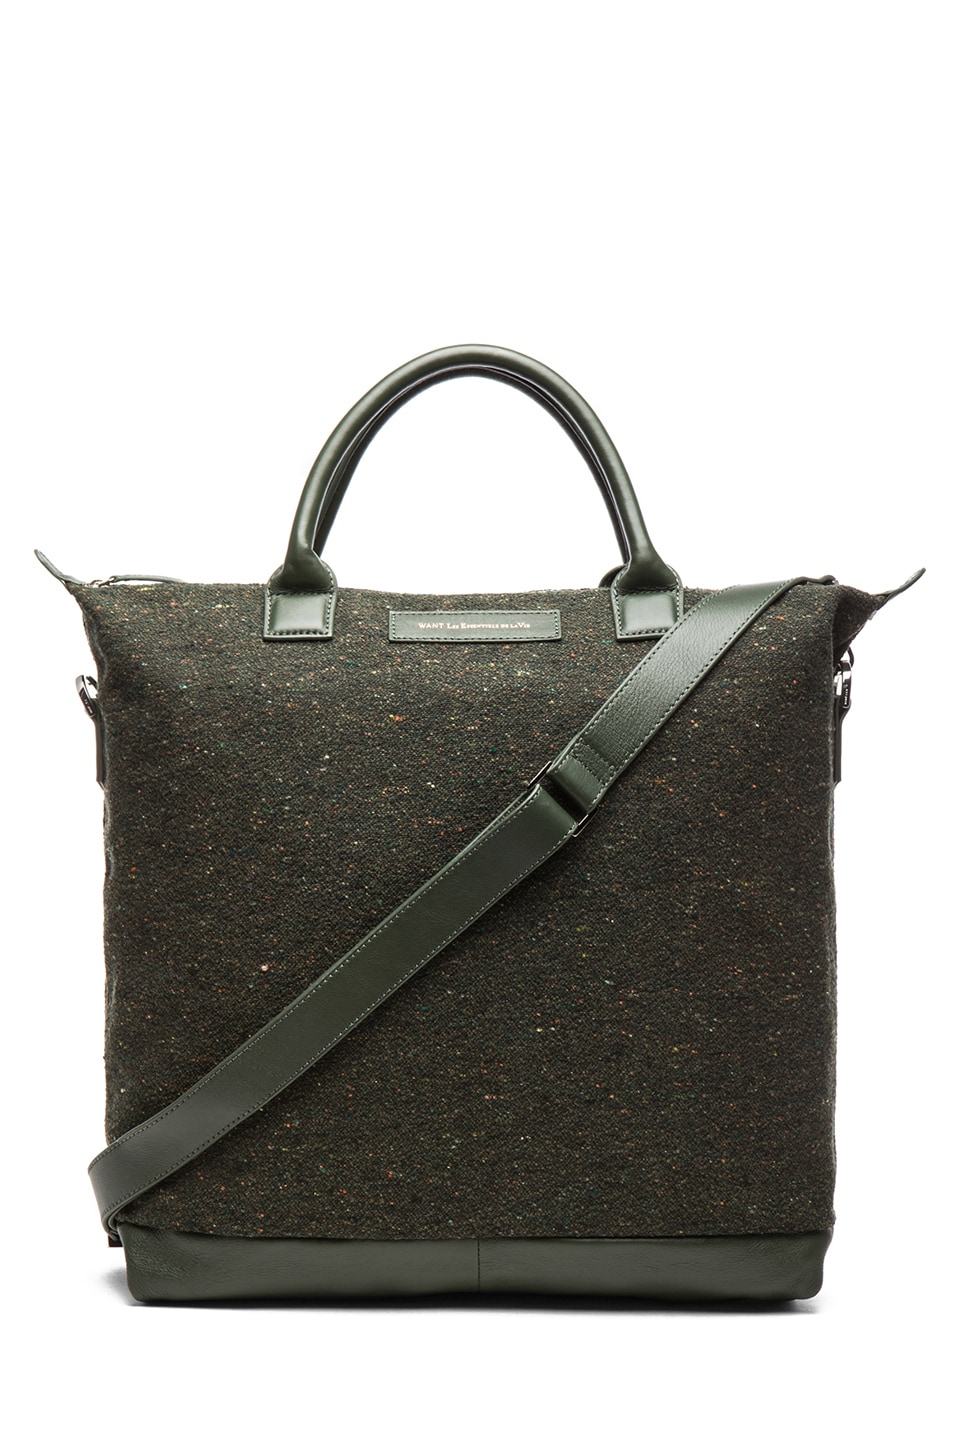 Image 1 of Want Les Essentiels De La Vie O'Hare Shopper Tote in Spruce Fire & Moss